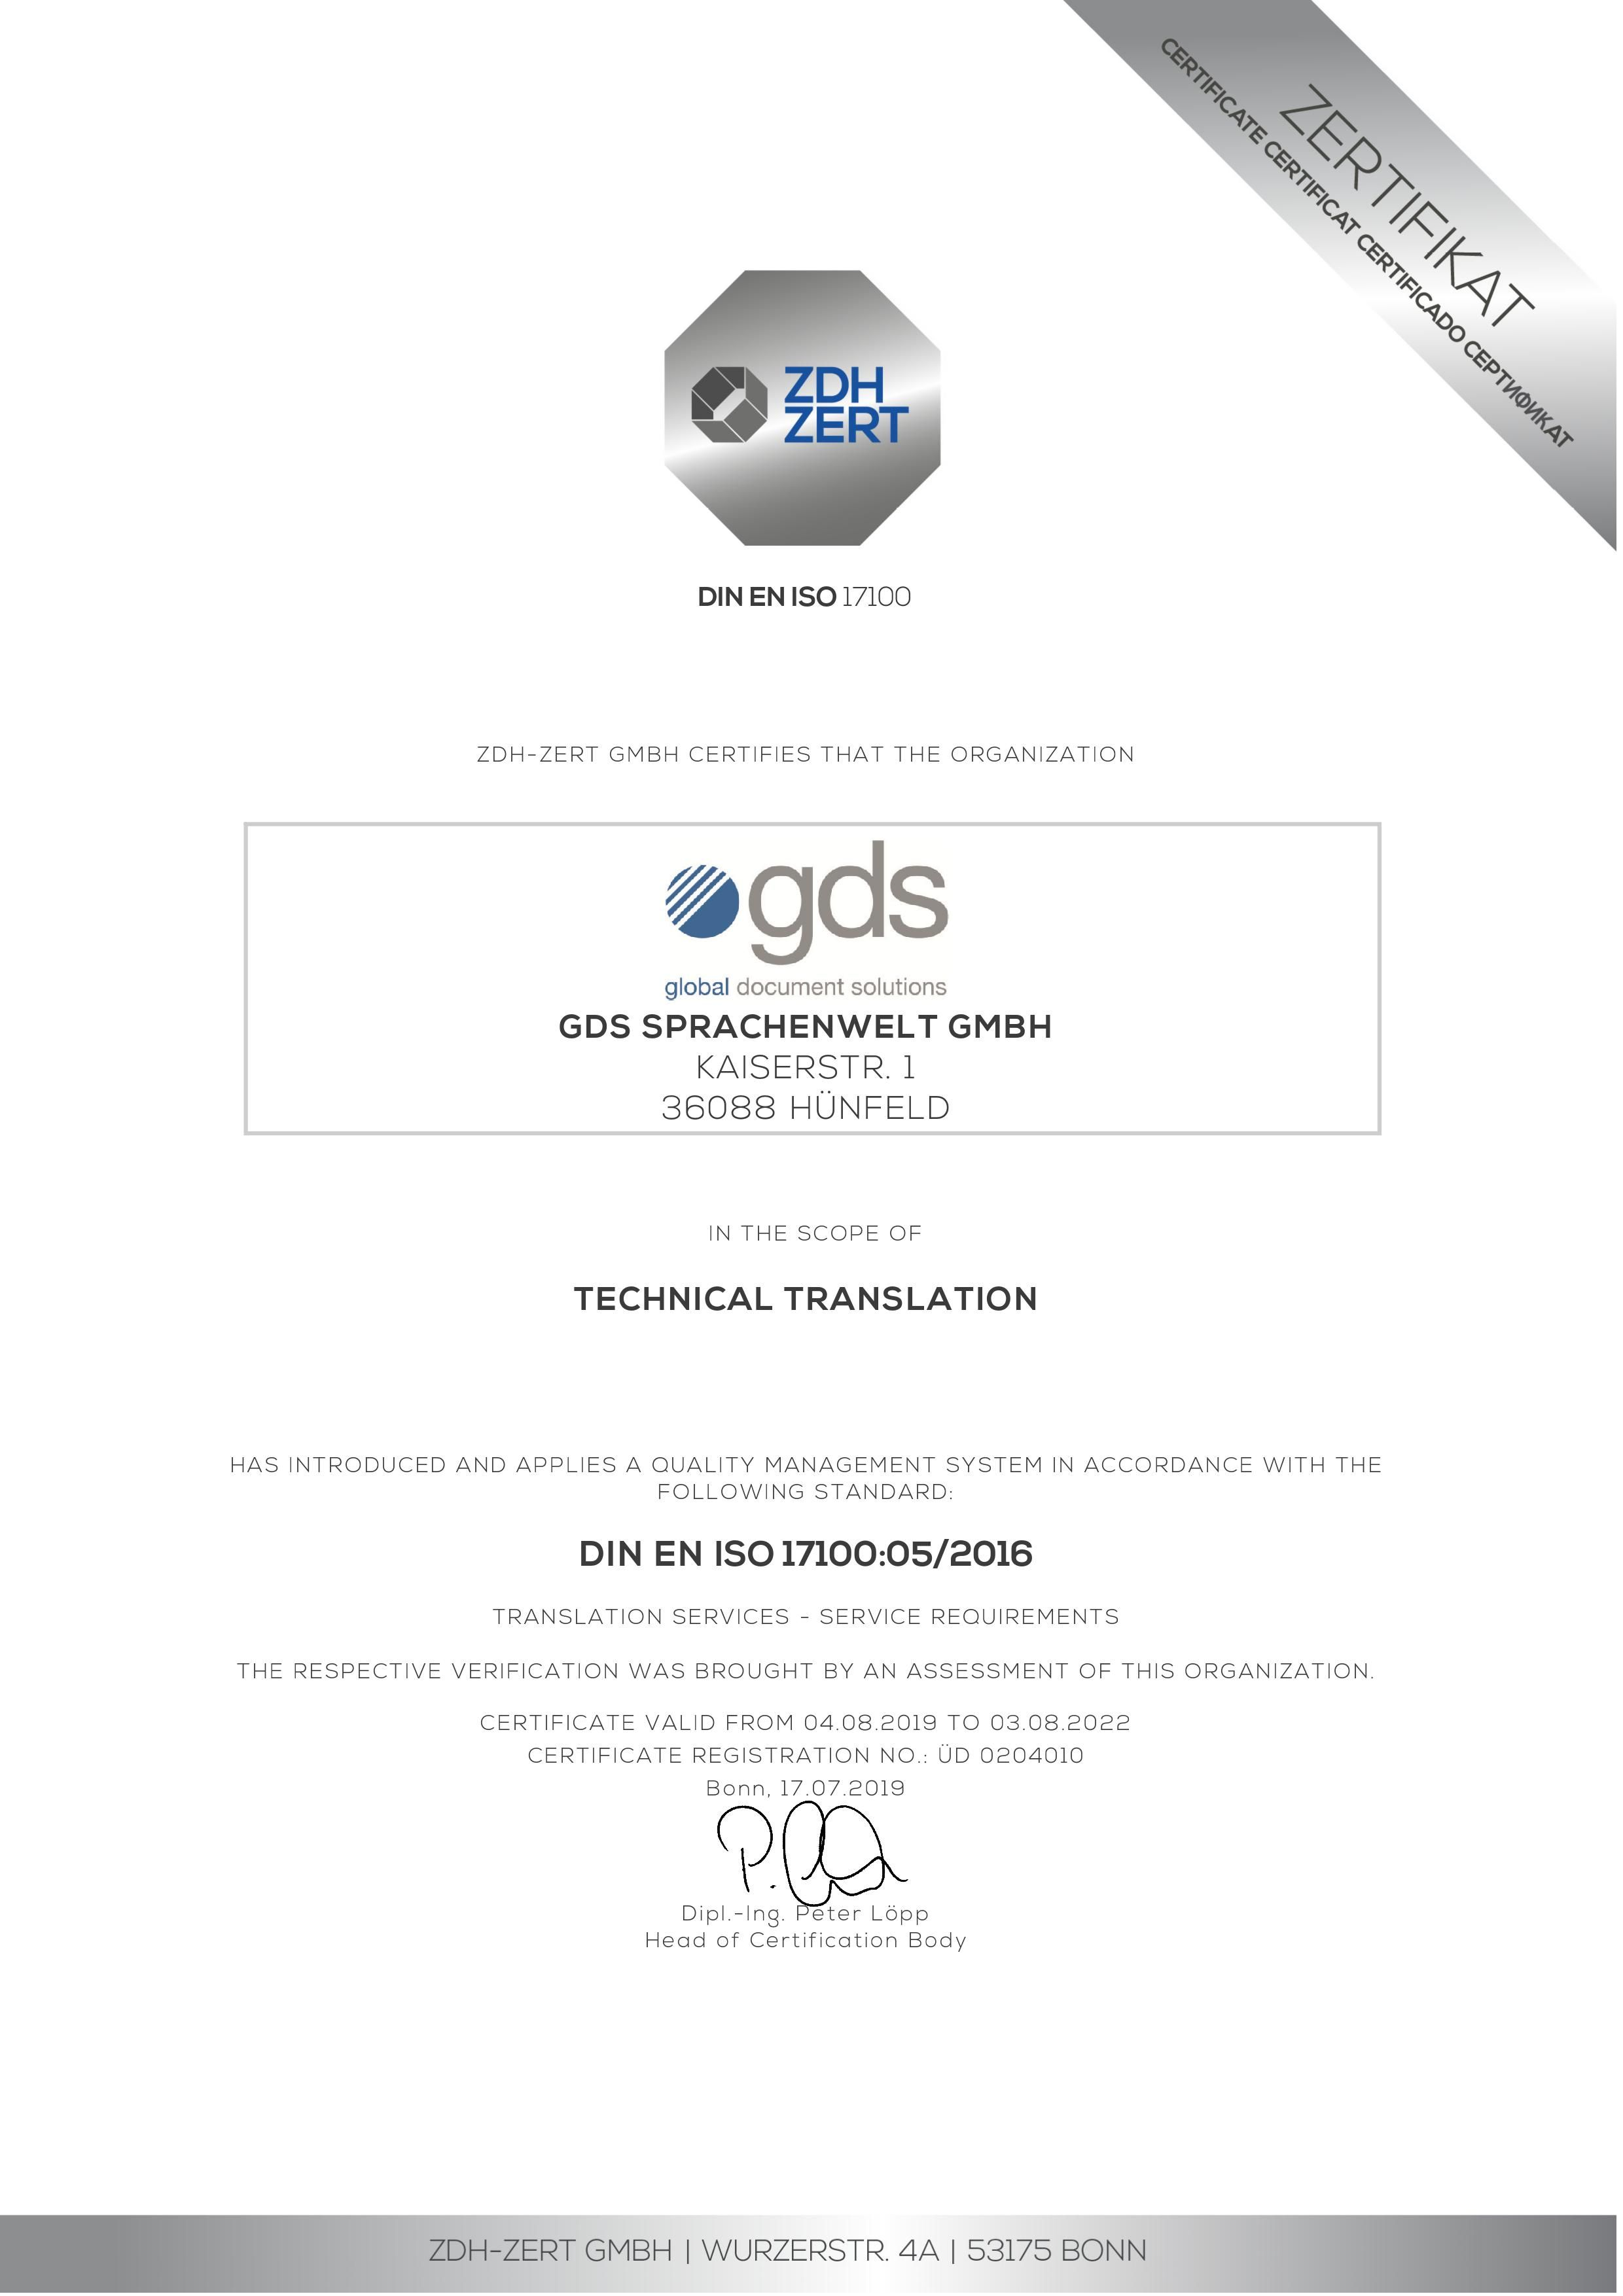 ZDH-Zert GmbH certifies that gds Sprachenwelt GmbH has introduced and applied a quality management system in the field of specialist translations in accordance with the DIN EN ISO 17100:05/2016 standard.